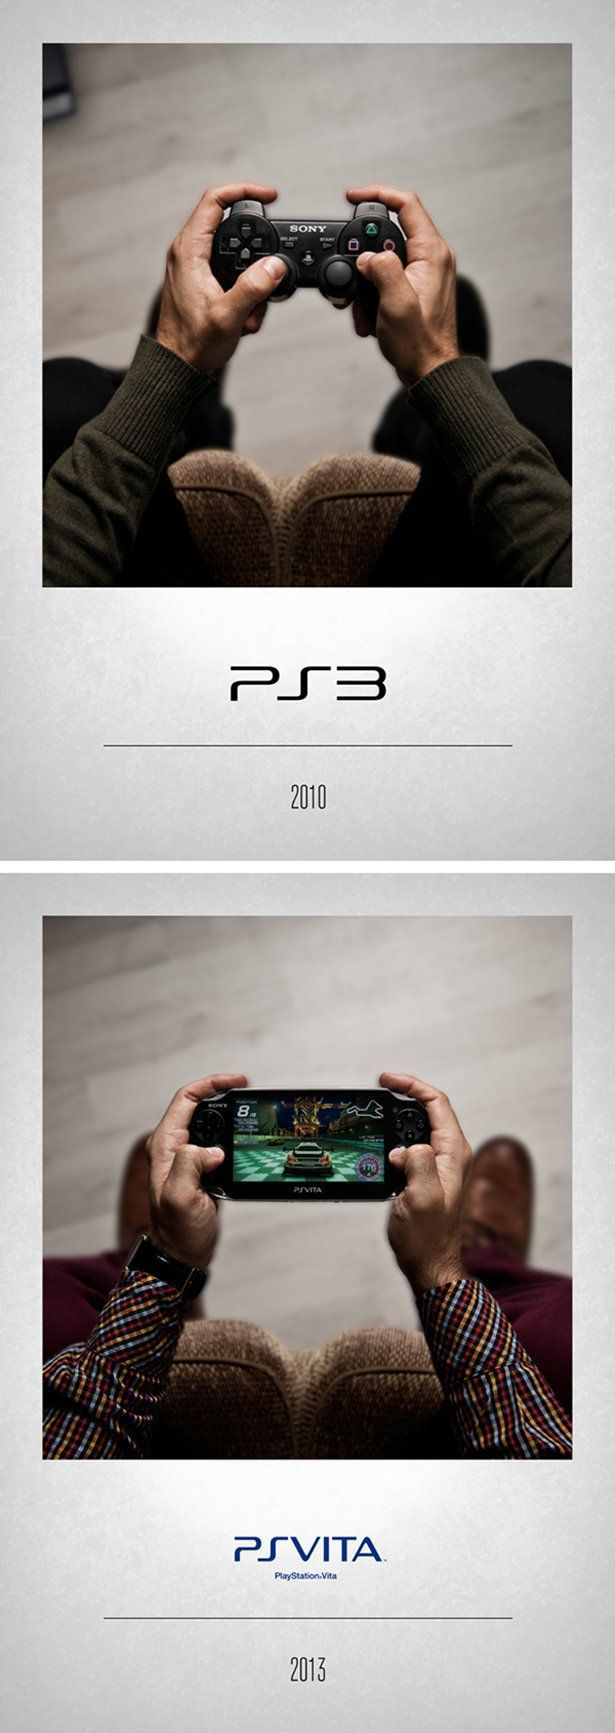 how_video_game_controllers_have_changed_over_the_years_640_high_15